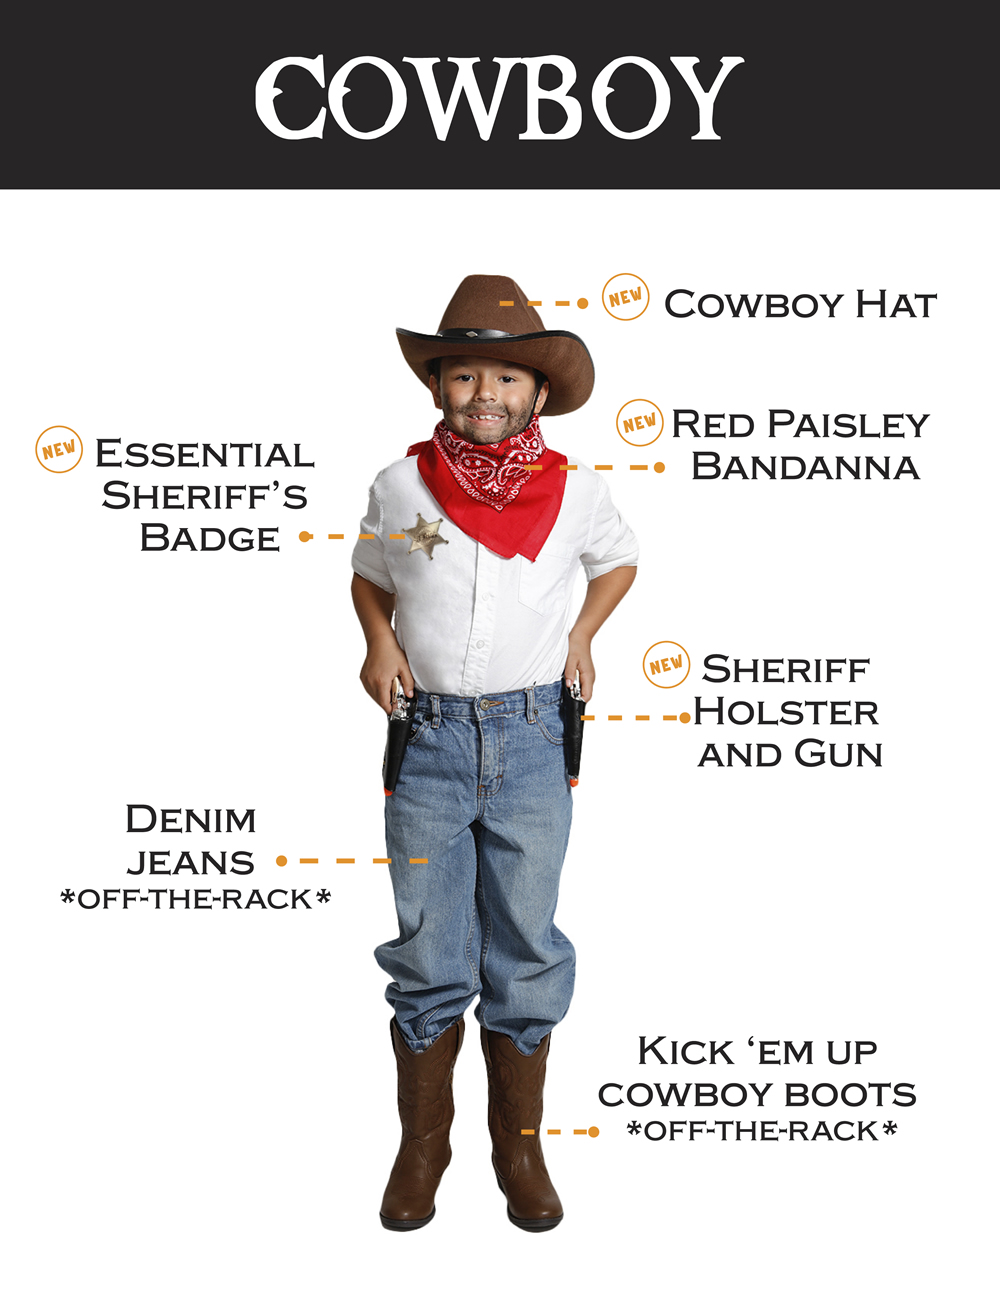 Cowboy: essential sheriff's badge, cowboy hat, red paisley bandanna, denim jeans, sheriff holster and gun